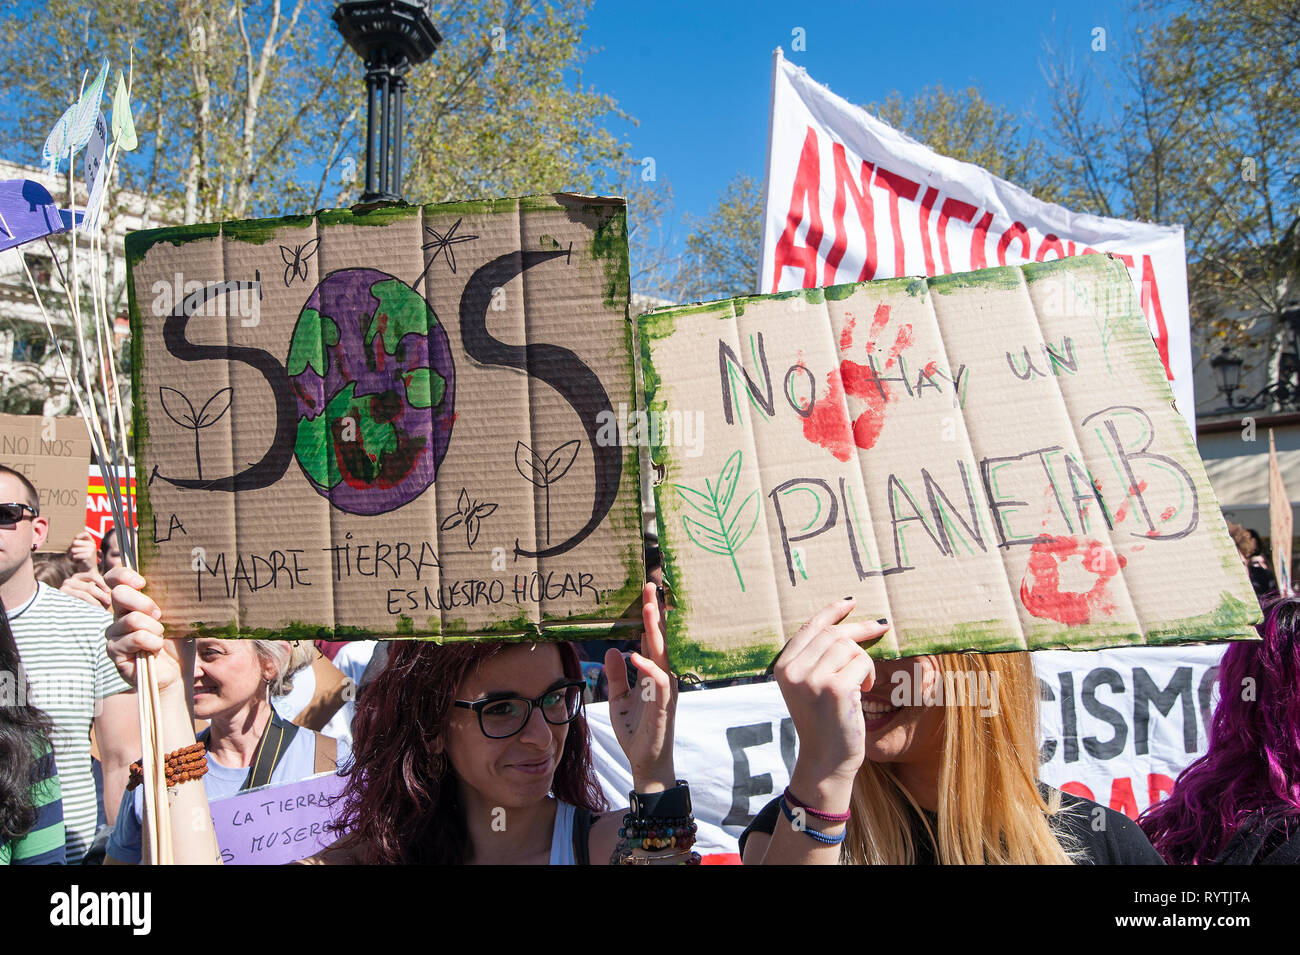 Seville, Spain. 15th Mar 2019. Hundreds of young people took to the street to join the Fridays for Future movement. Demanding that we change politics and save our planet. Worldwide on 16th March 2019 thousands of people marched for better climate policies. Credit: Claudia Wiens/Alamy Live News Stock Photo